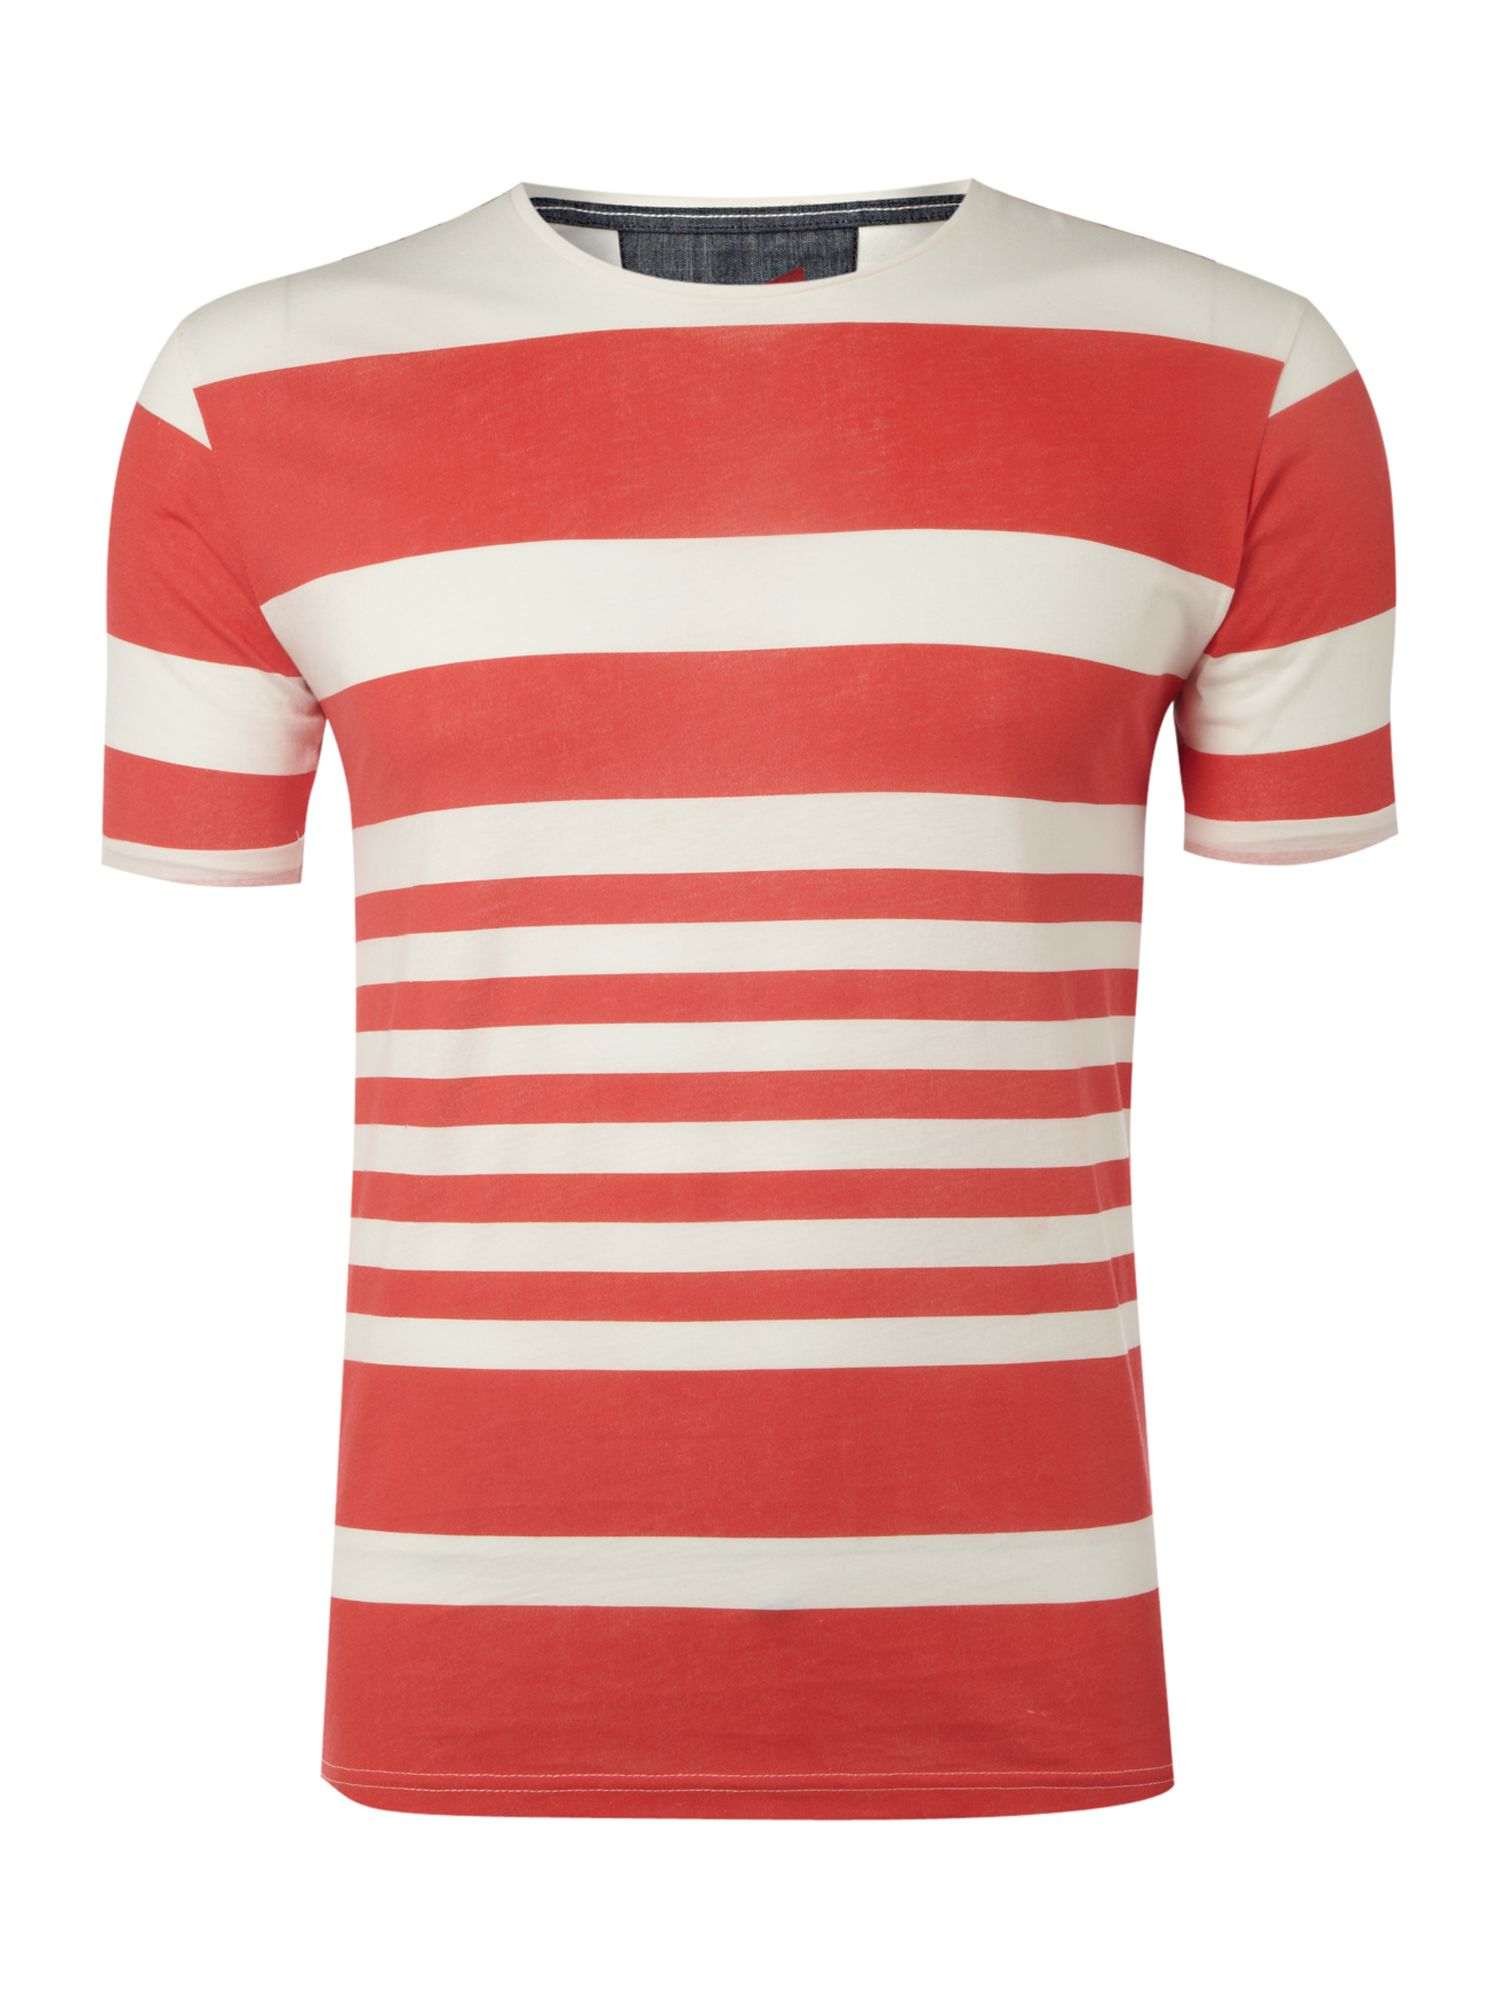 Selected Short-sleeved horizontal striped T-shirt - Coral product image